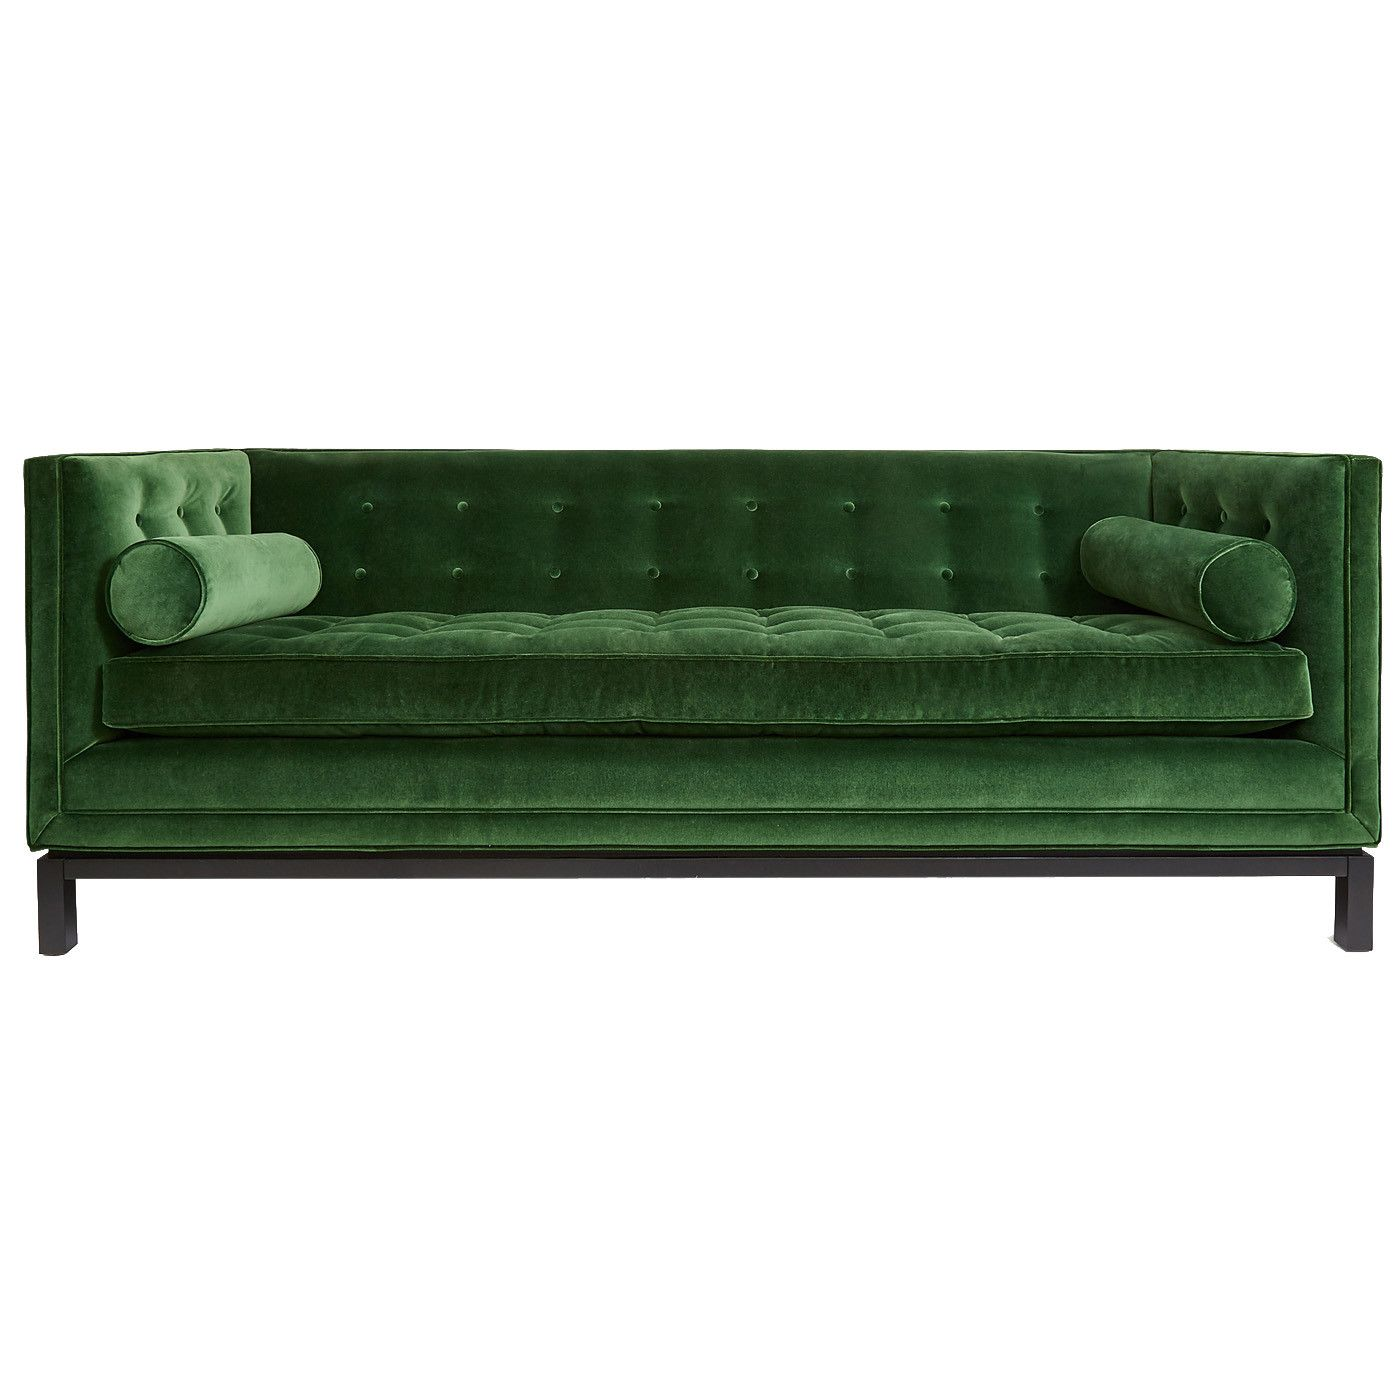 sofa bed green velvet scs returns policy emerald waiting area jonathan adler and